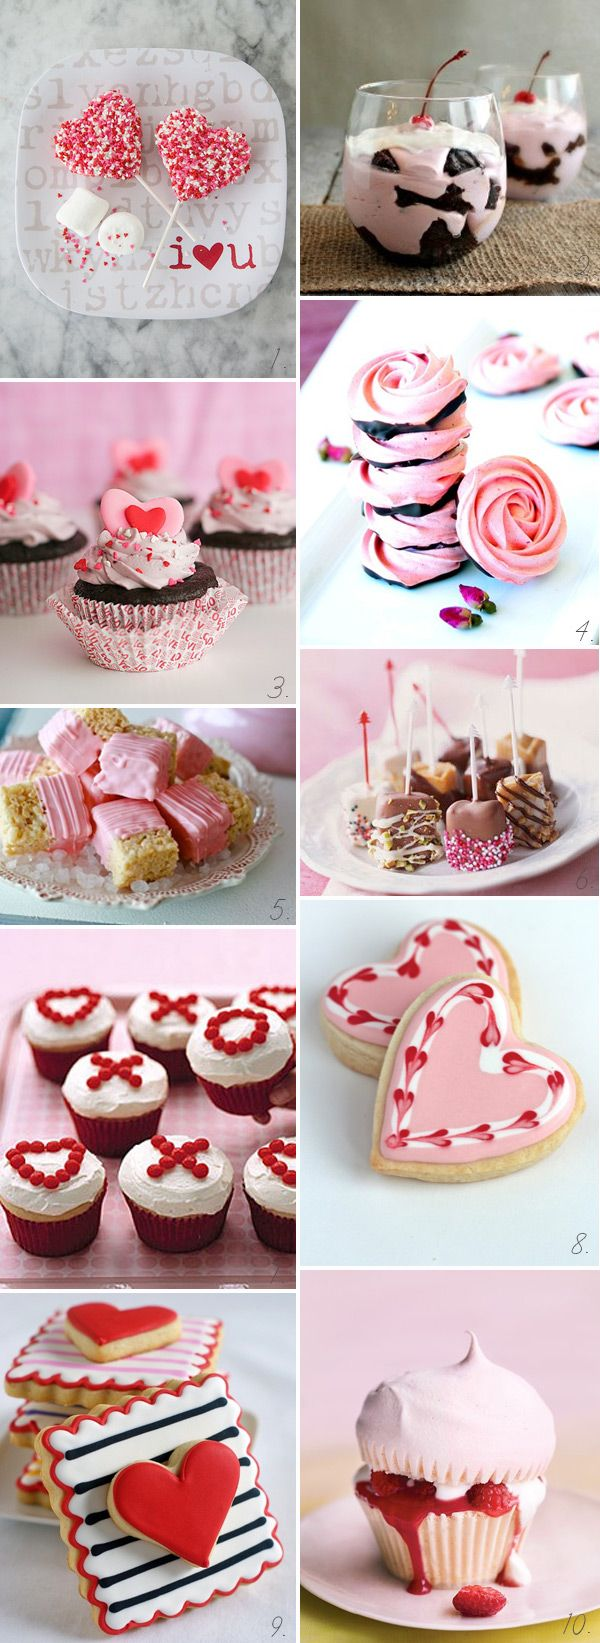 Yummy Sweets and Treats – Valentine's Day Goodies | onefabday.com